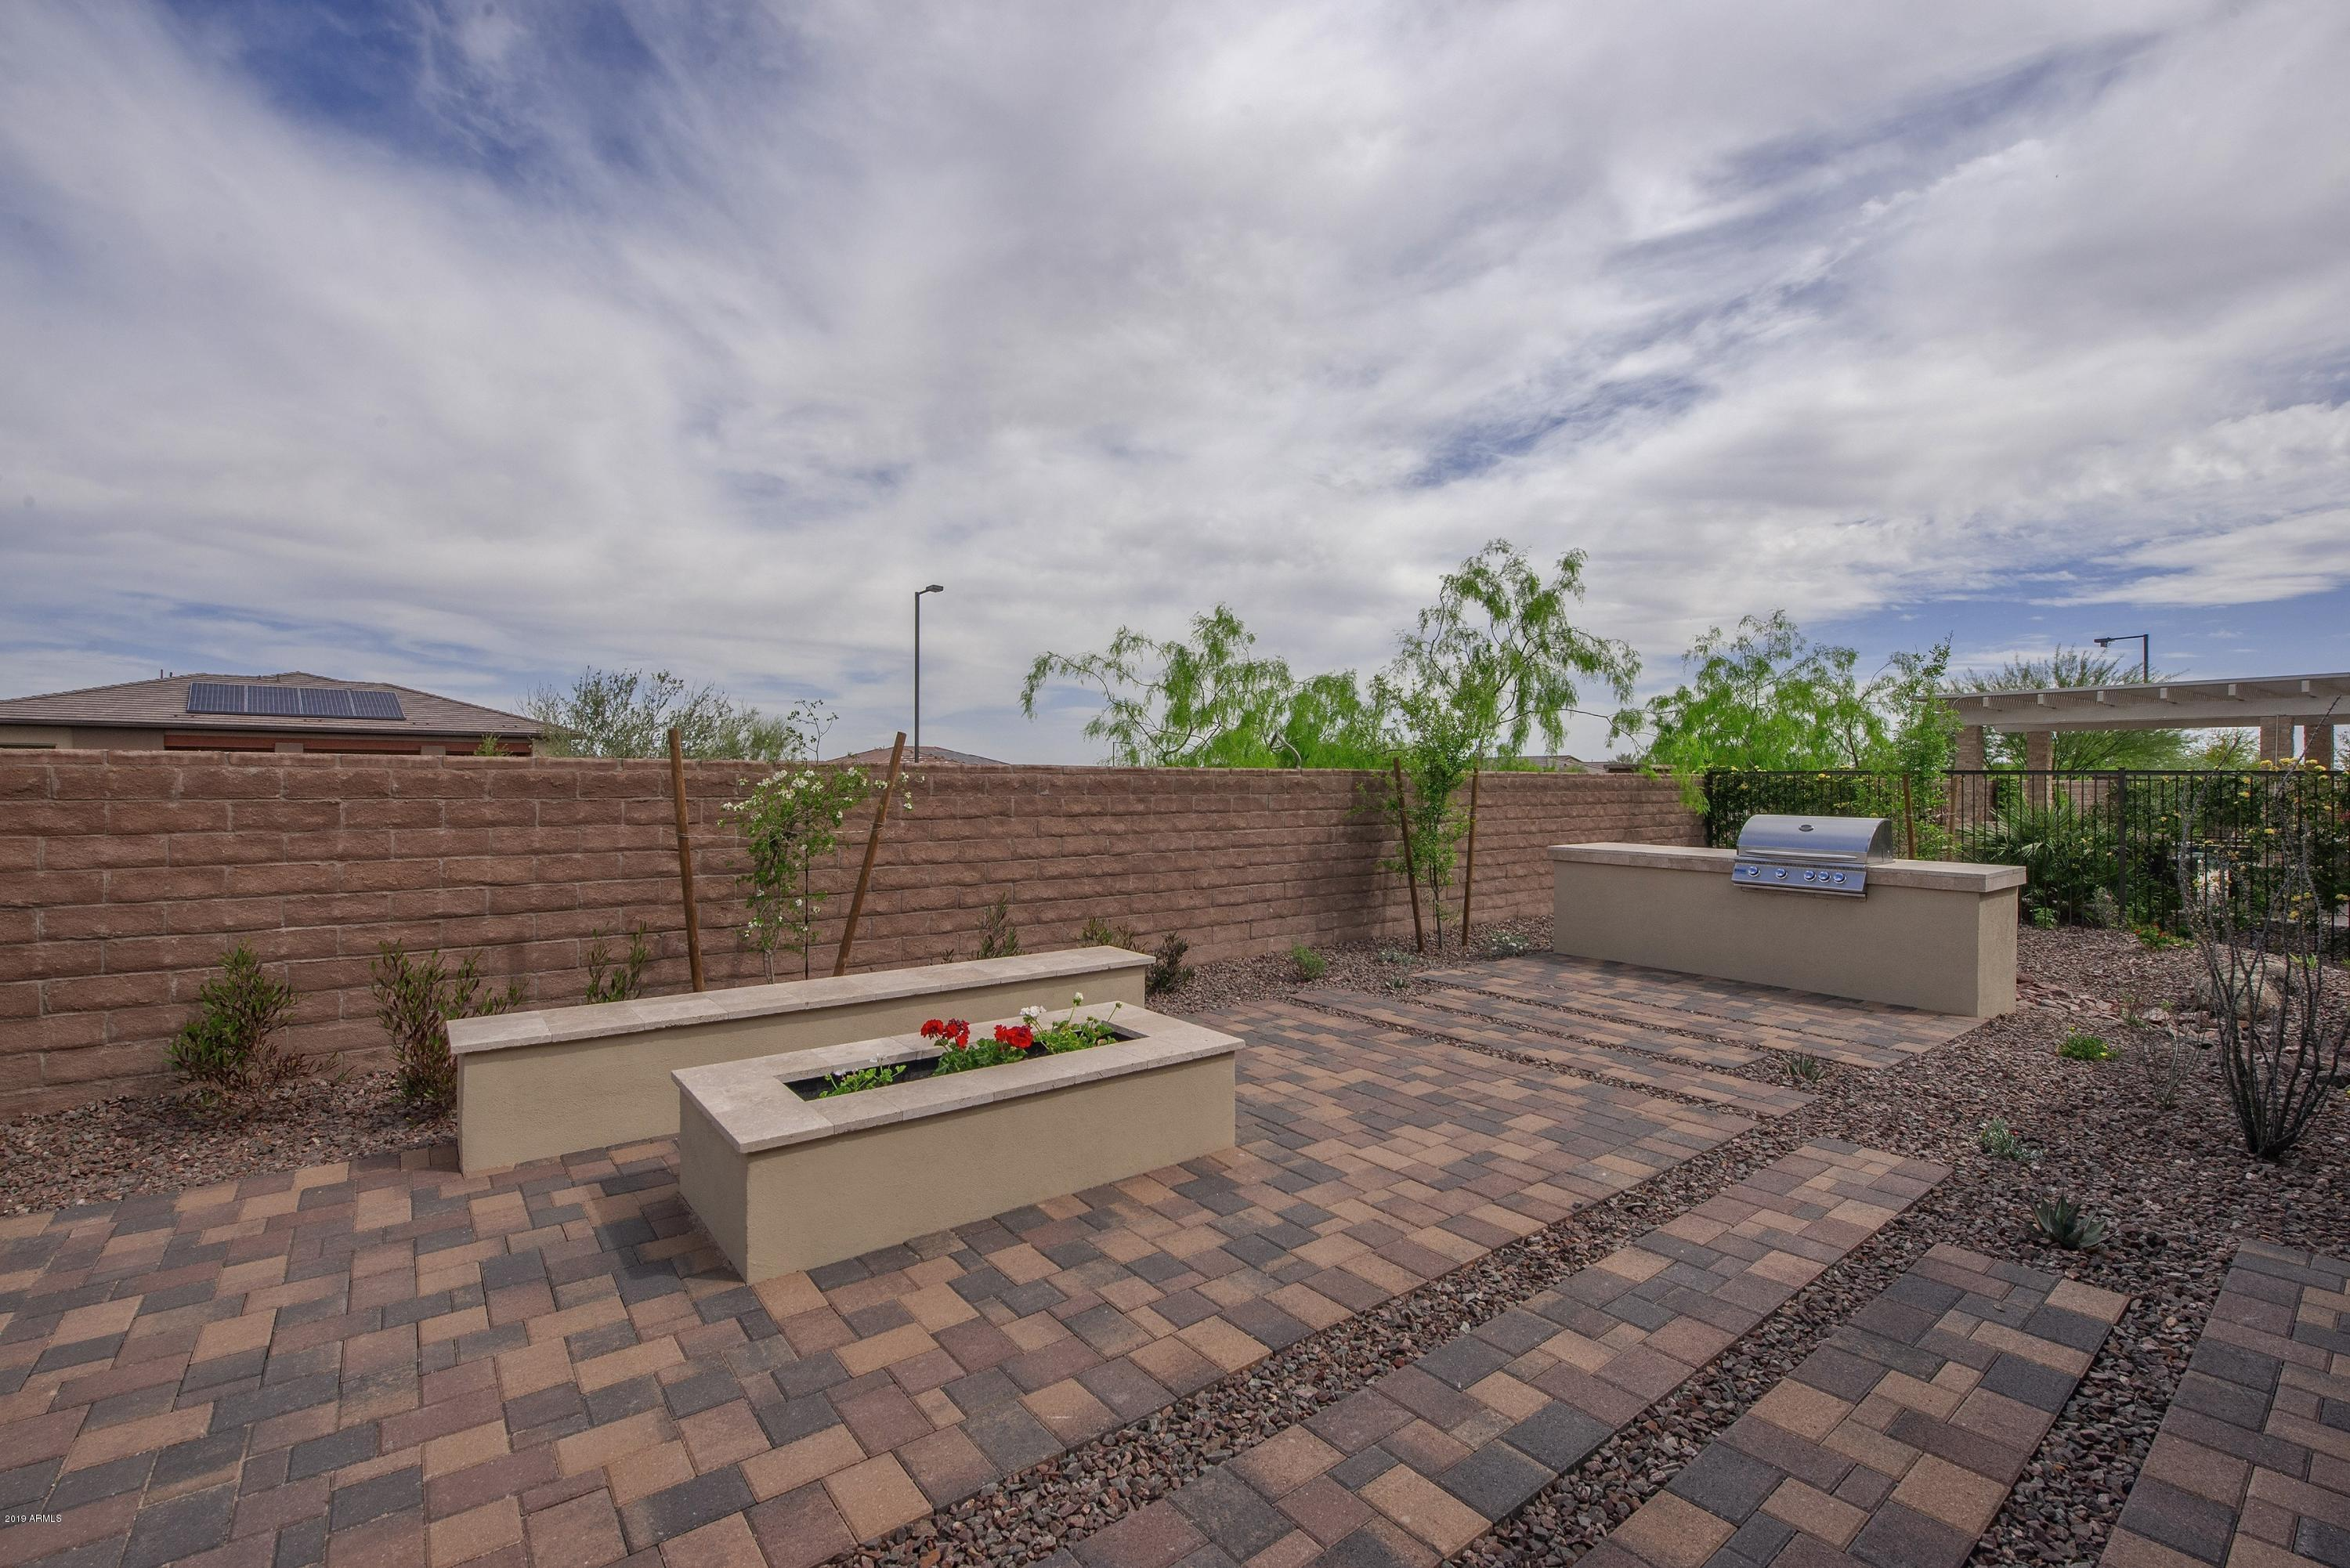 MLS 5809632 29843 N 133RD Avenue, Peoria, AZ 85383 Peoria AZ Trilogy At Vistancia